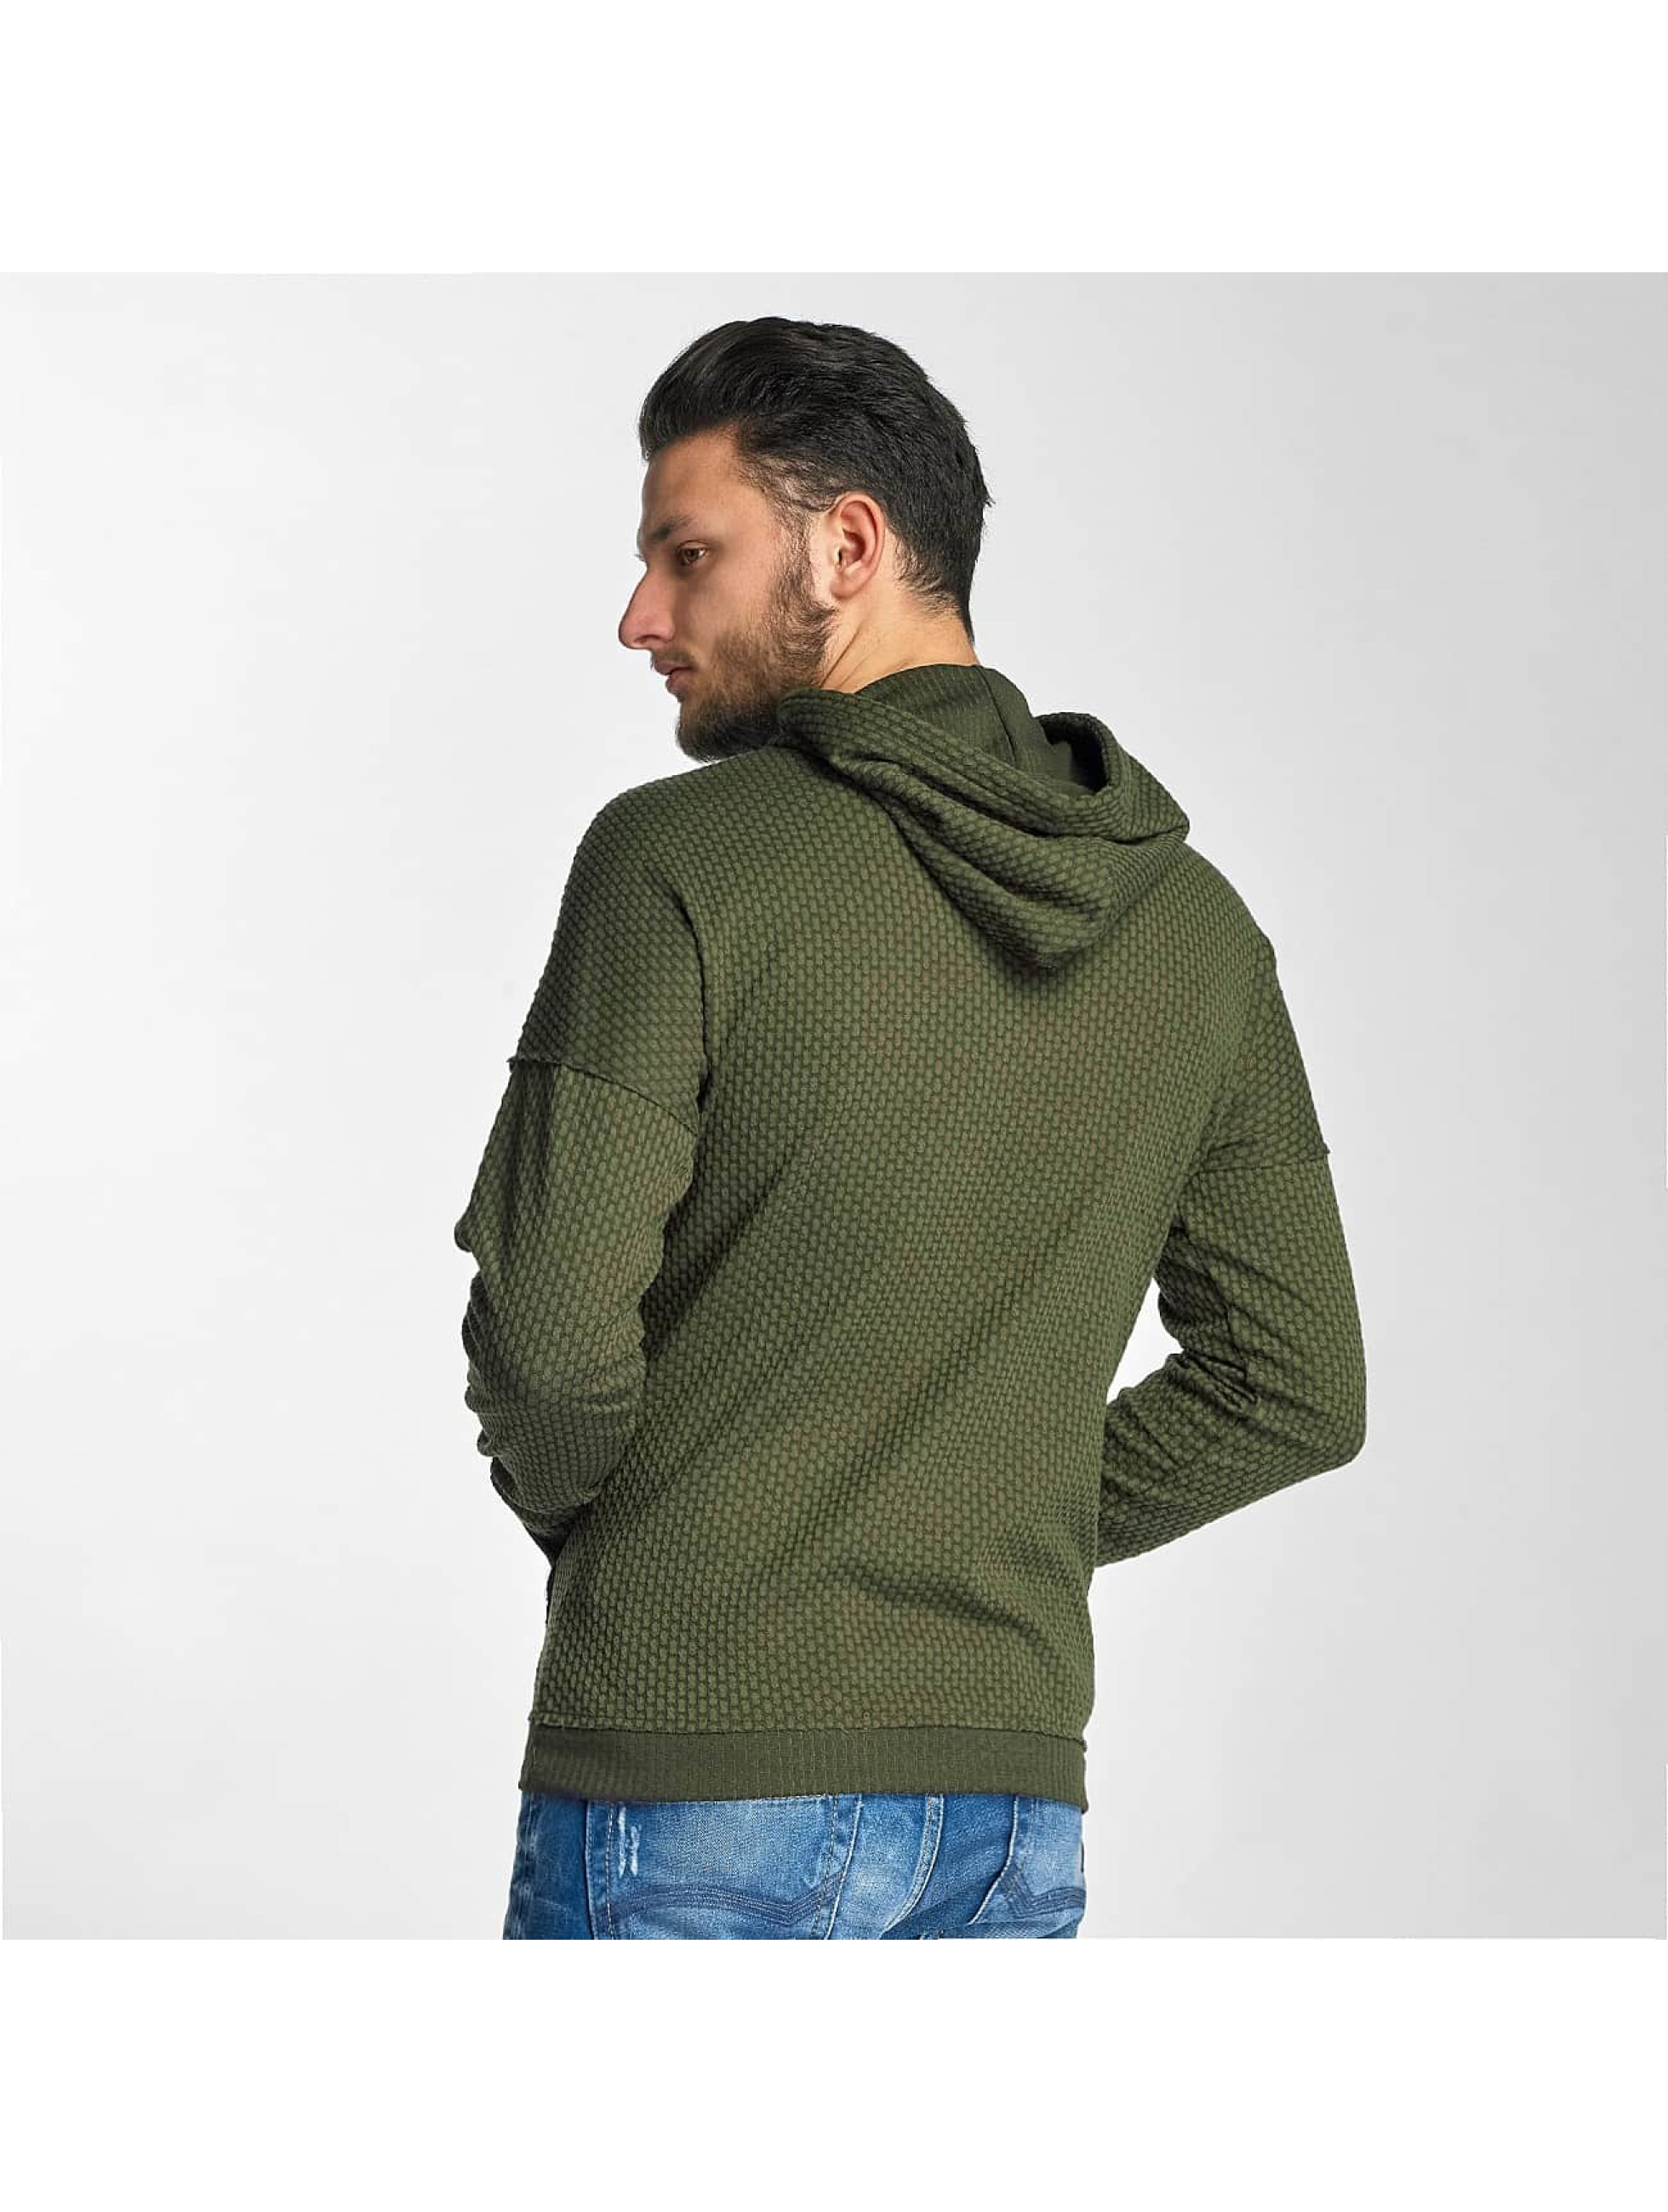 Red Bridge Hoodies Nameless Faces khaki